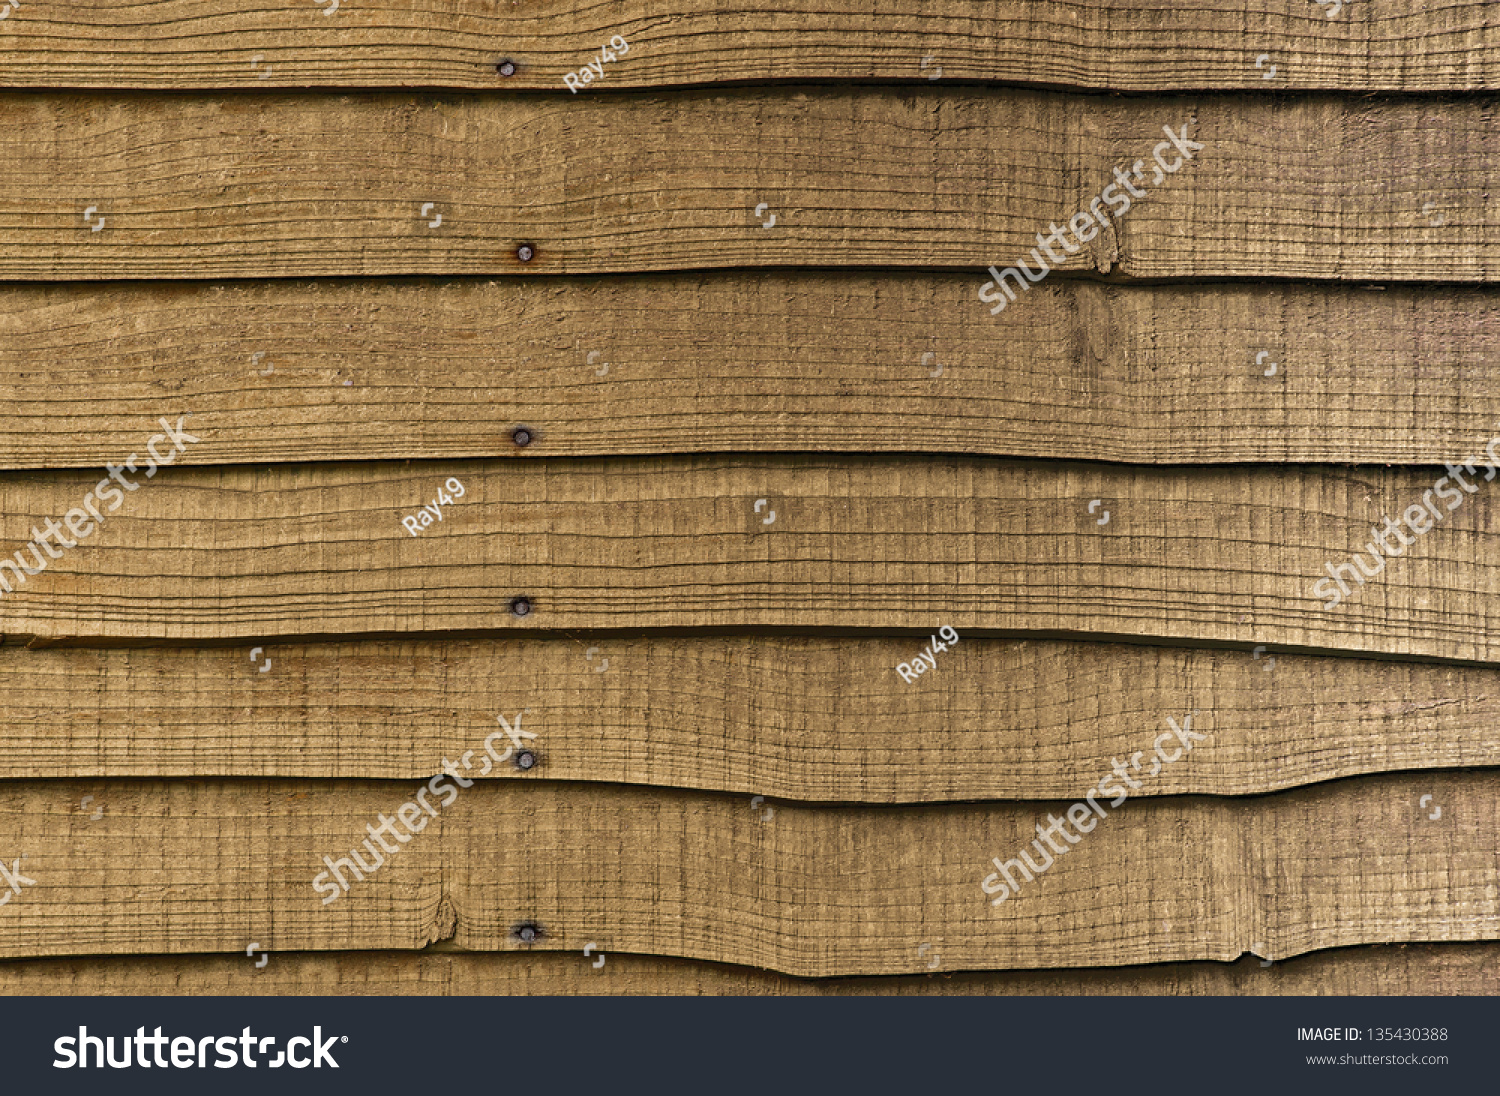 Horizontal Wood Fence Texture section horizontal overlapped wooden garden fencing stock photo